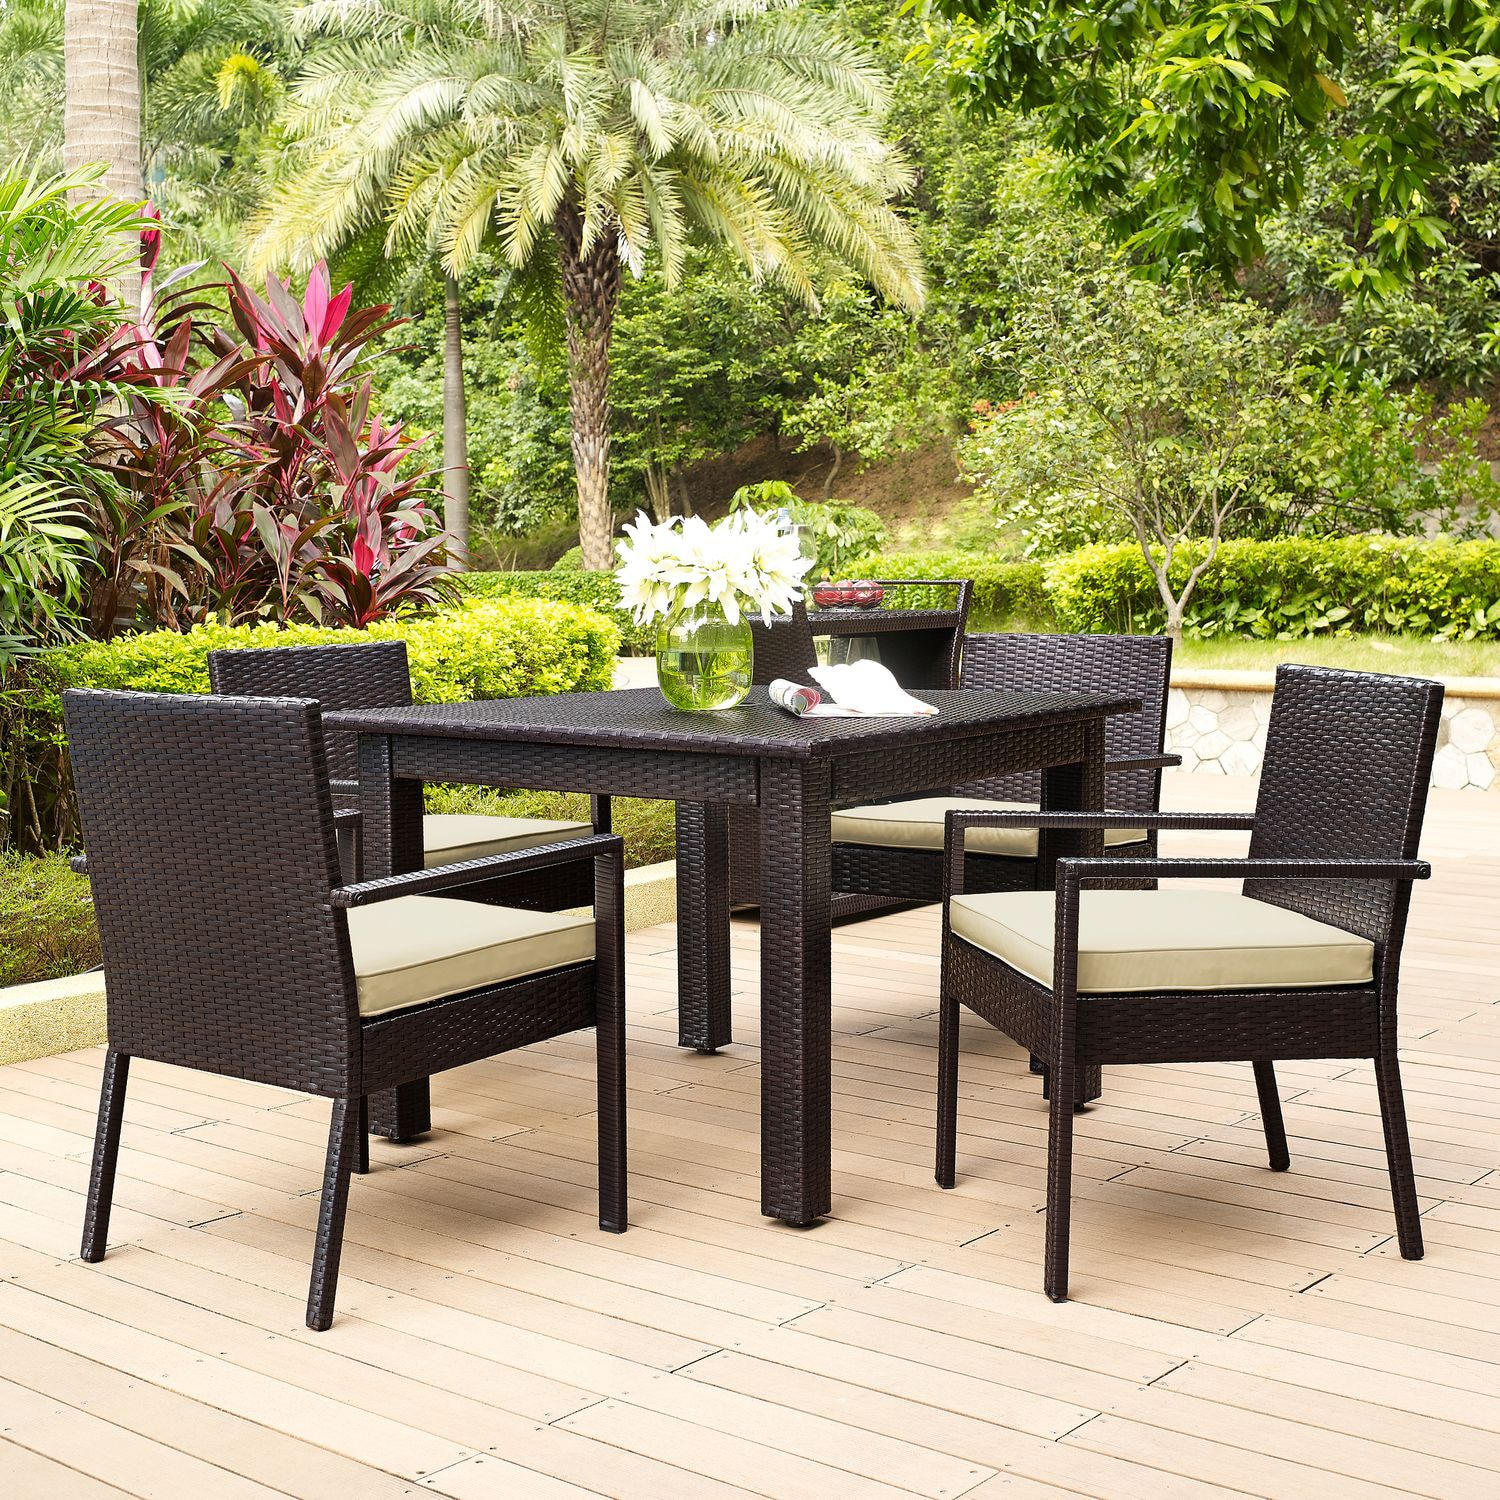 Aldo Outdoor Table And 4 Arm Chairs Set   Brown